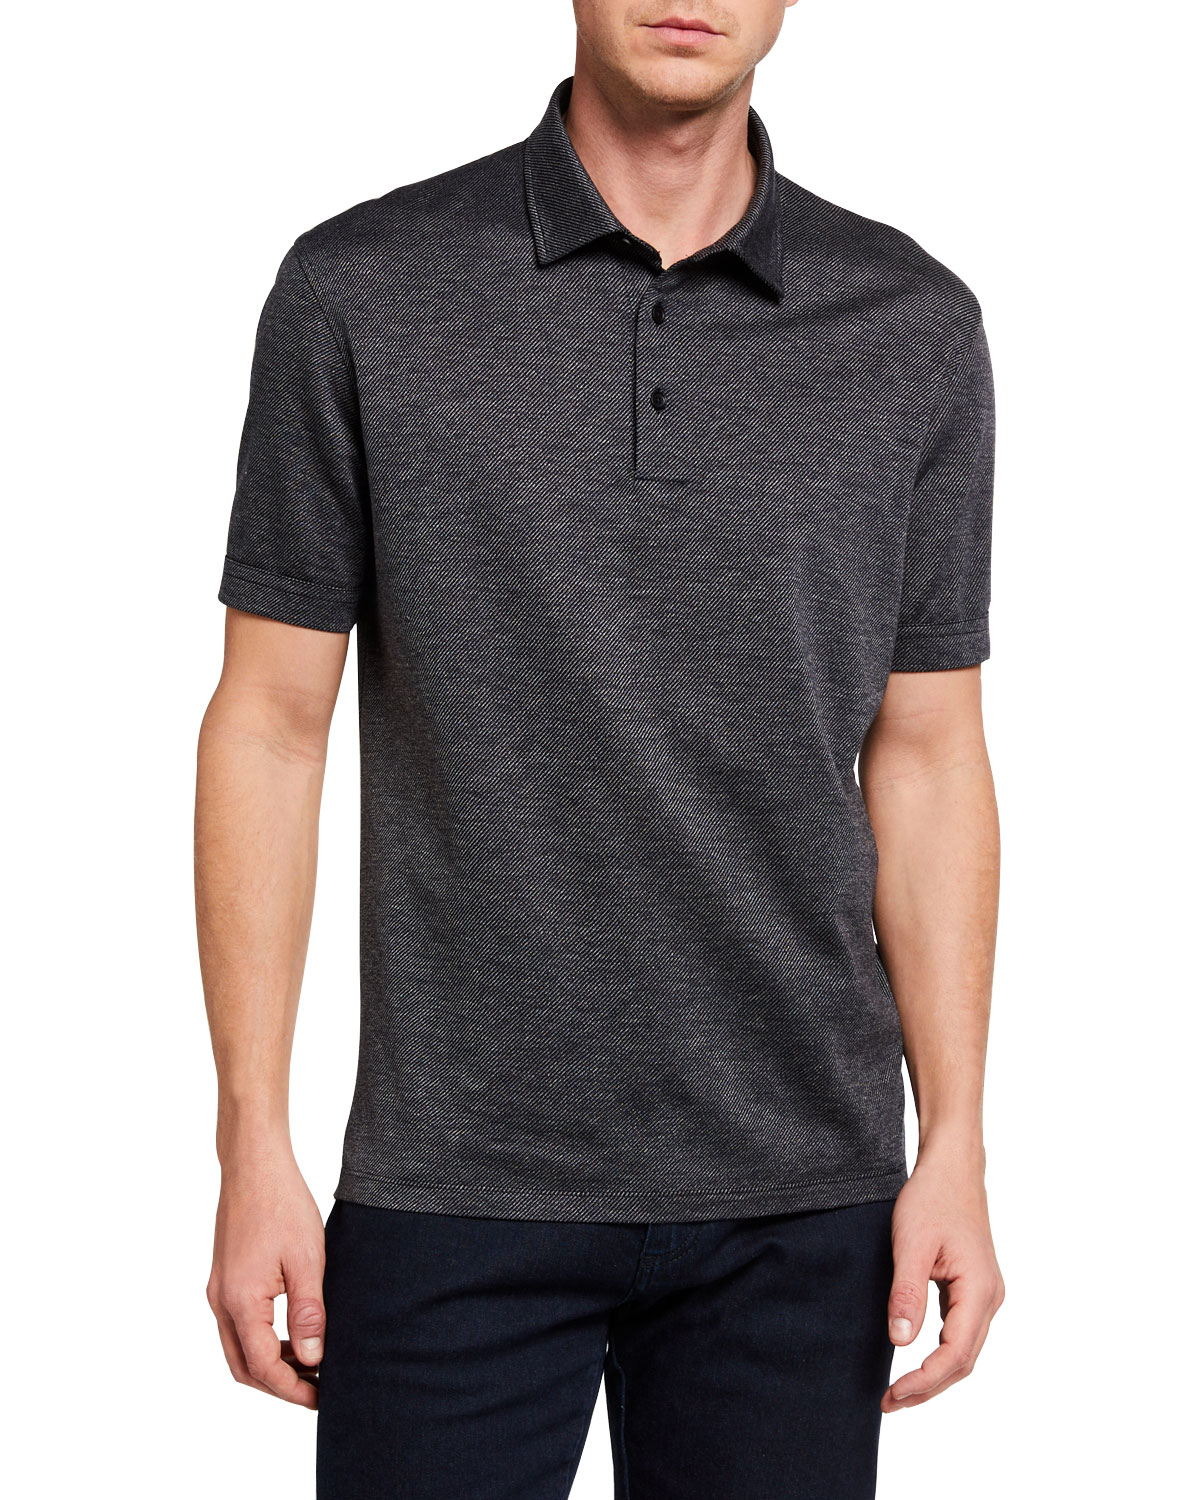 Ermenegildo Zegna Men's Twill Cotton Regular-Fit Polo Shirt